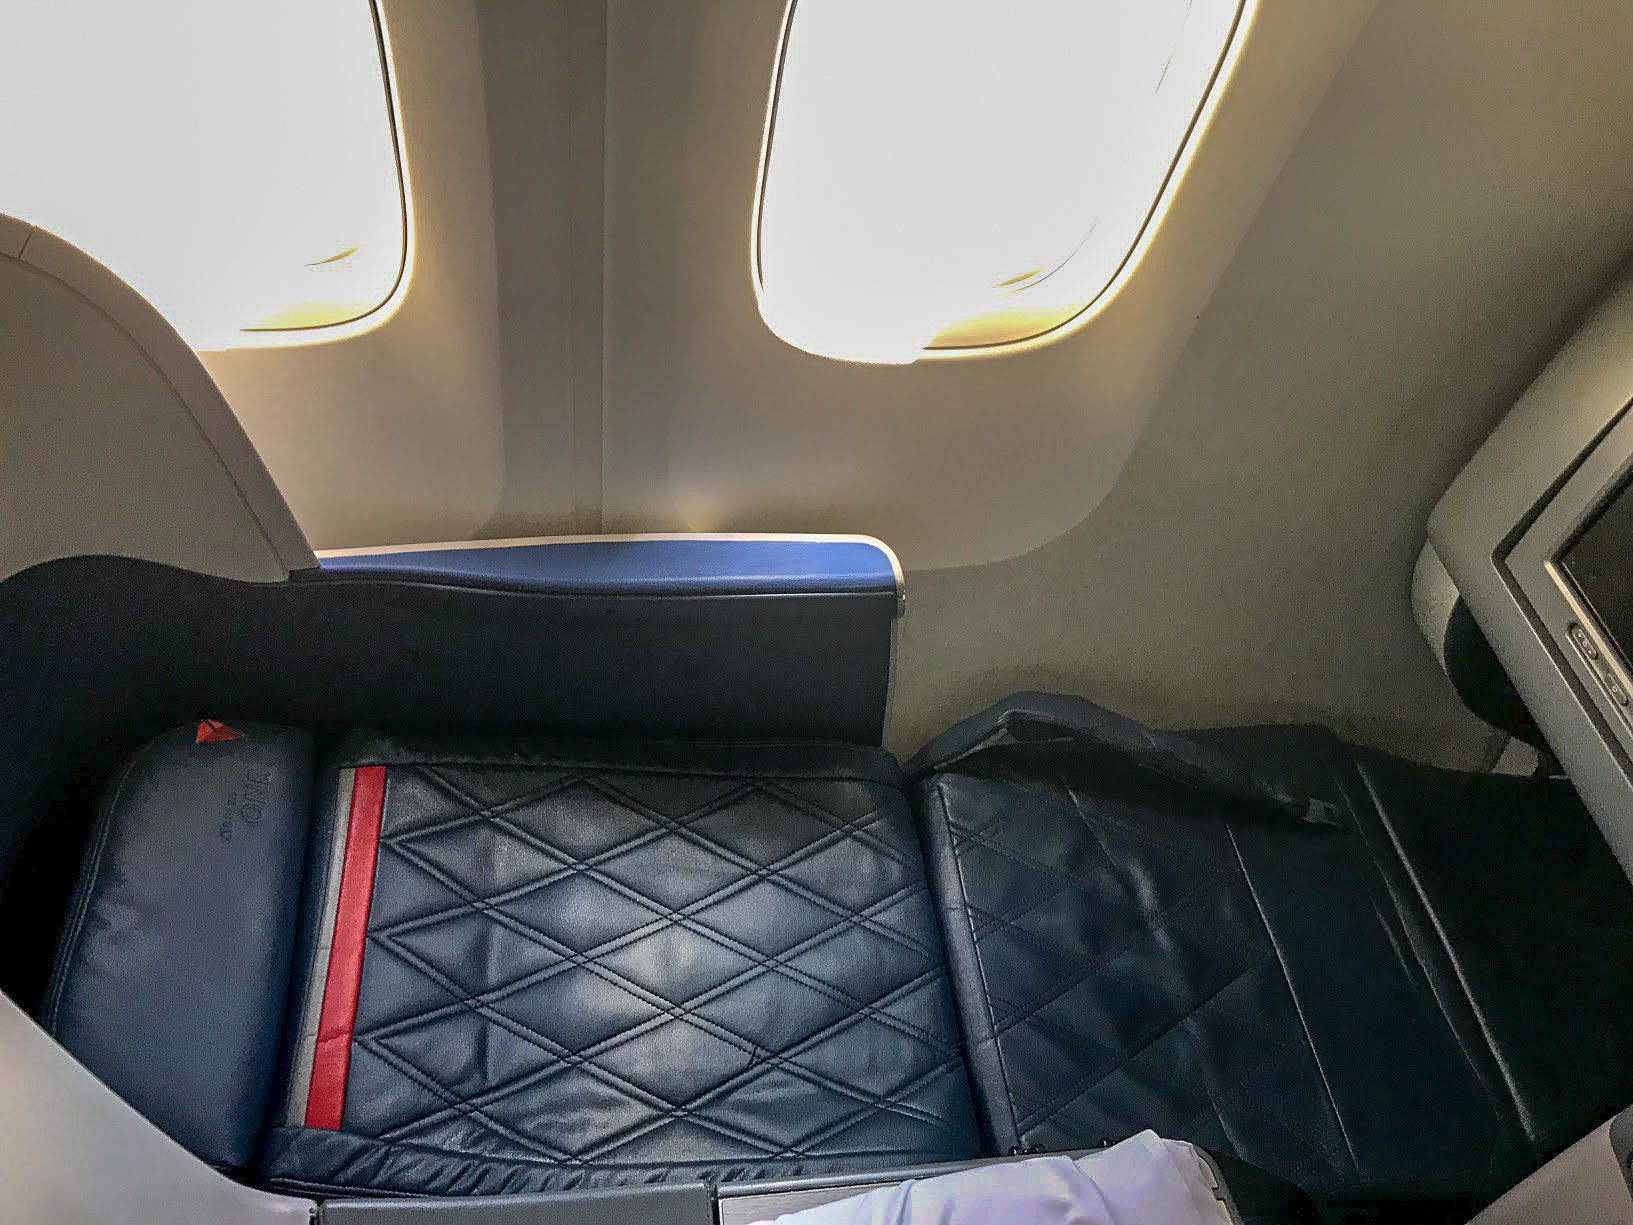 A Review of Delta 767-300ER Delta One / Delta Business Class LHR